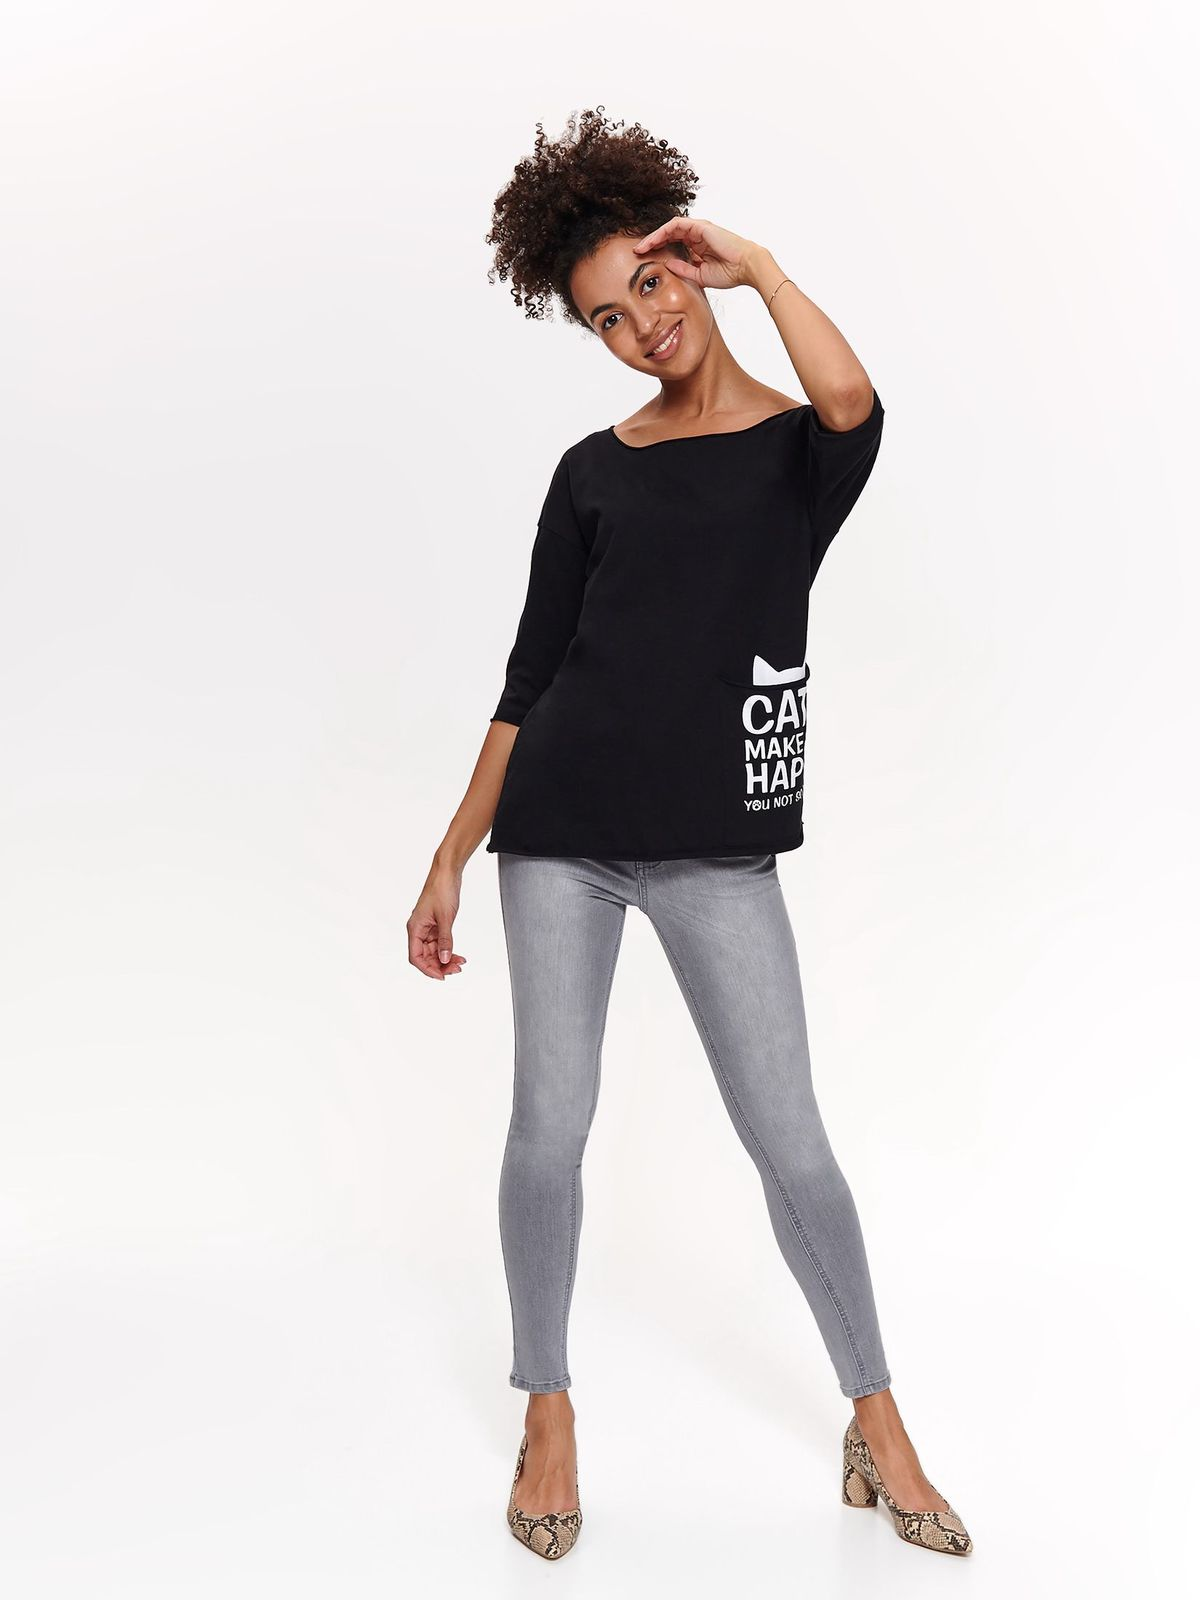 Top Secret black casual flared t-shirt cotton texted